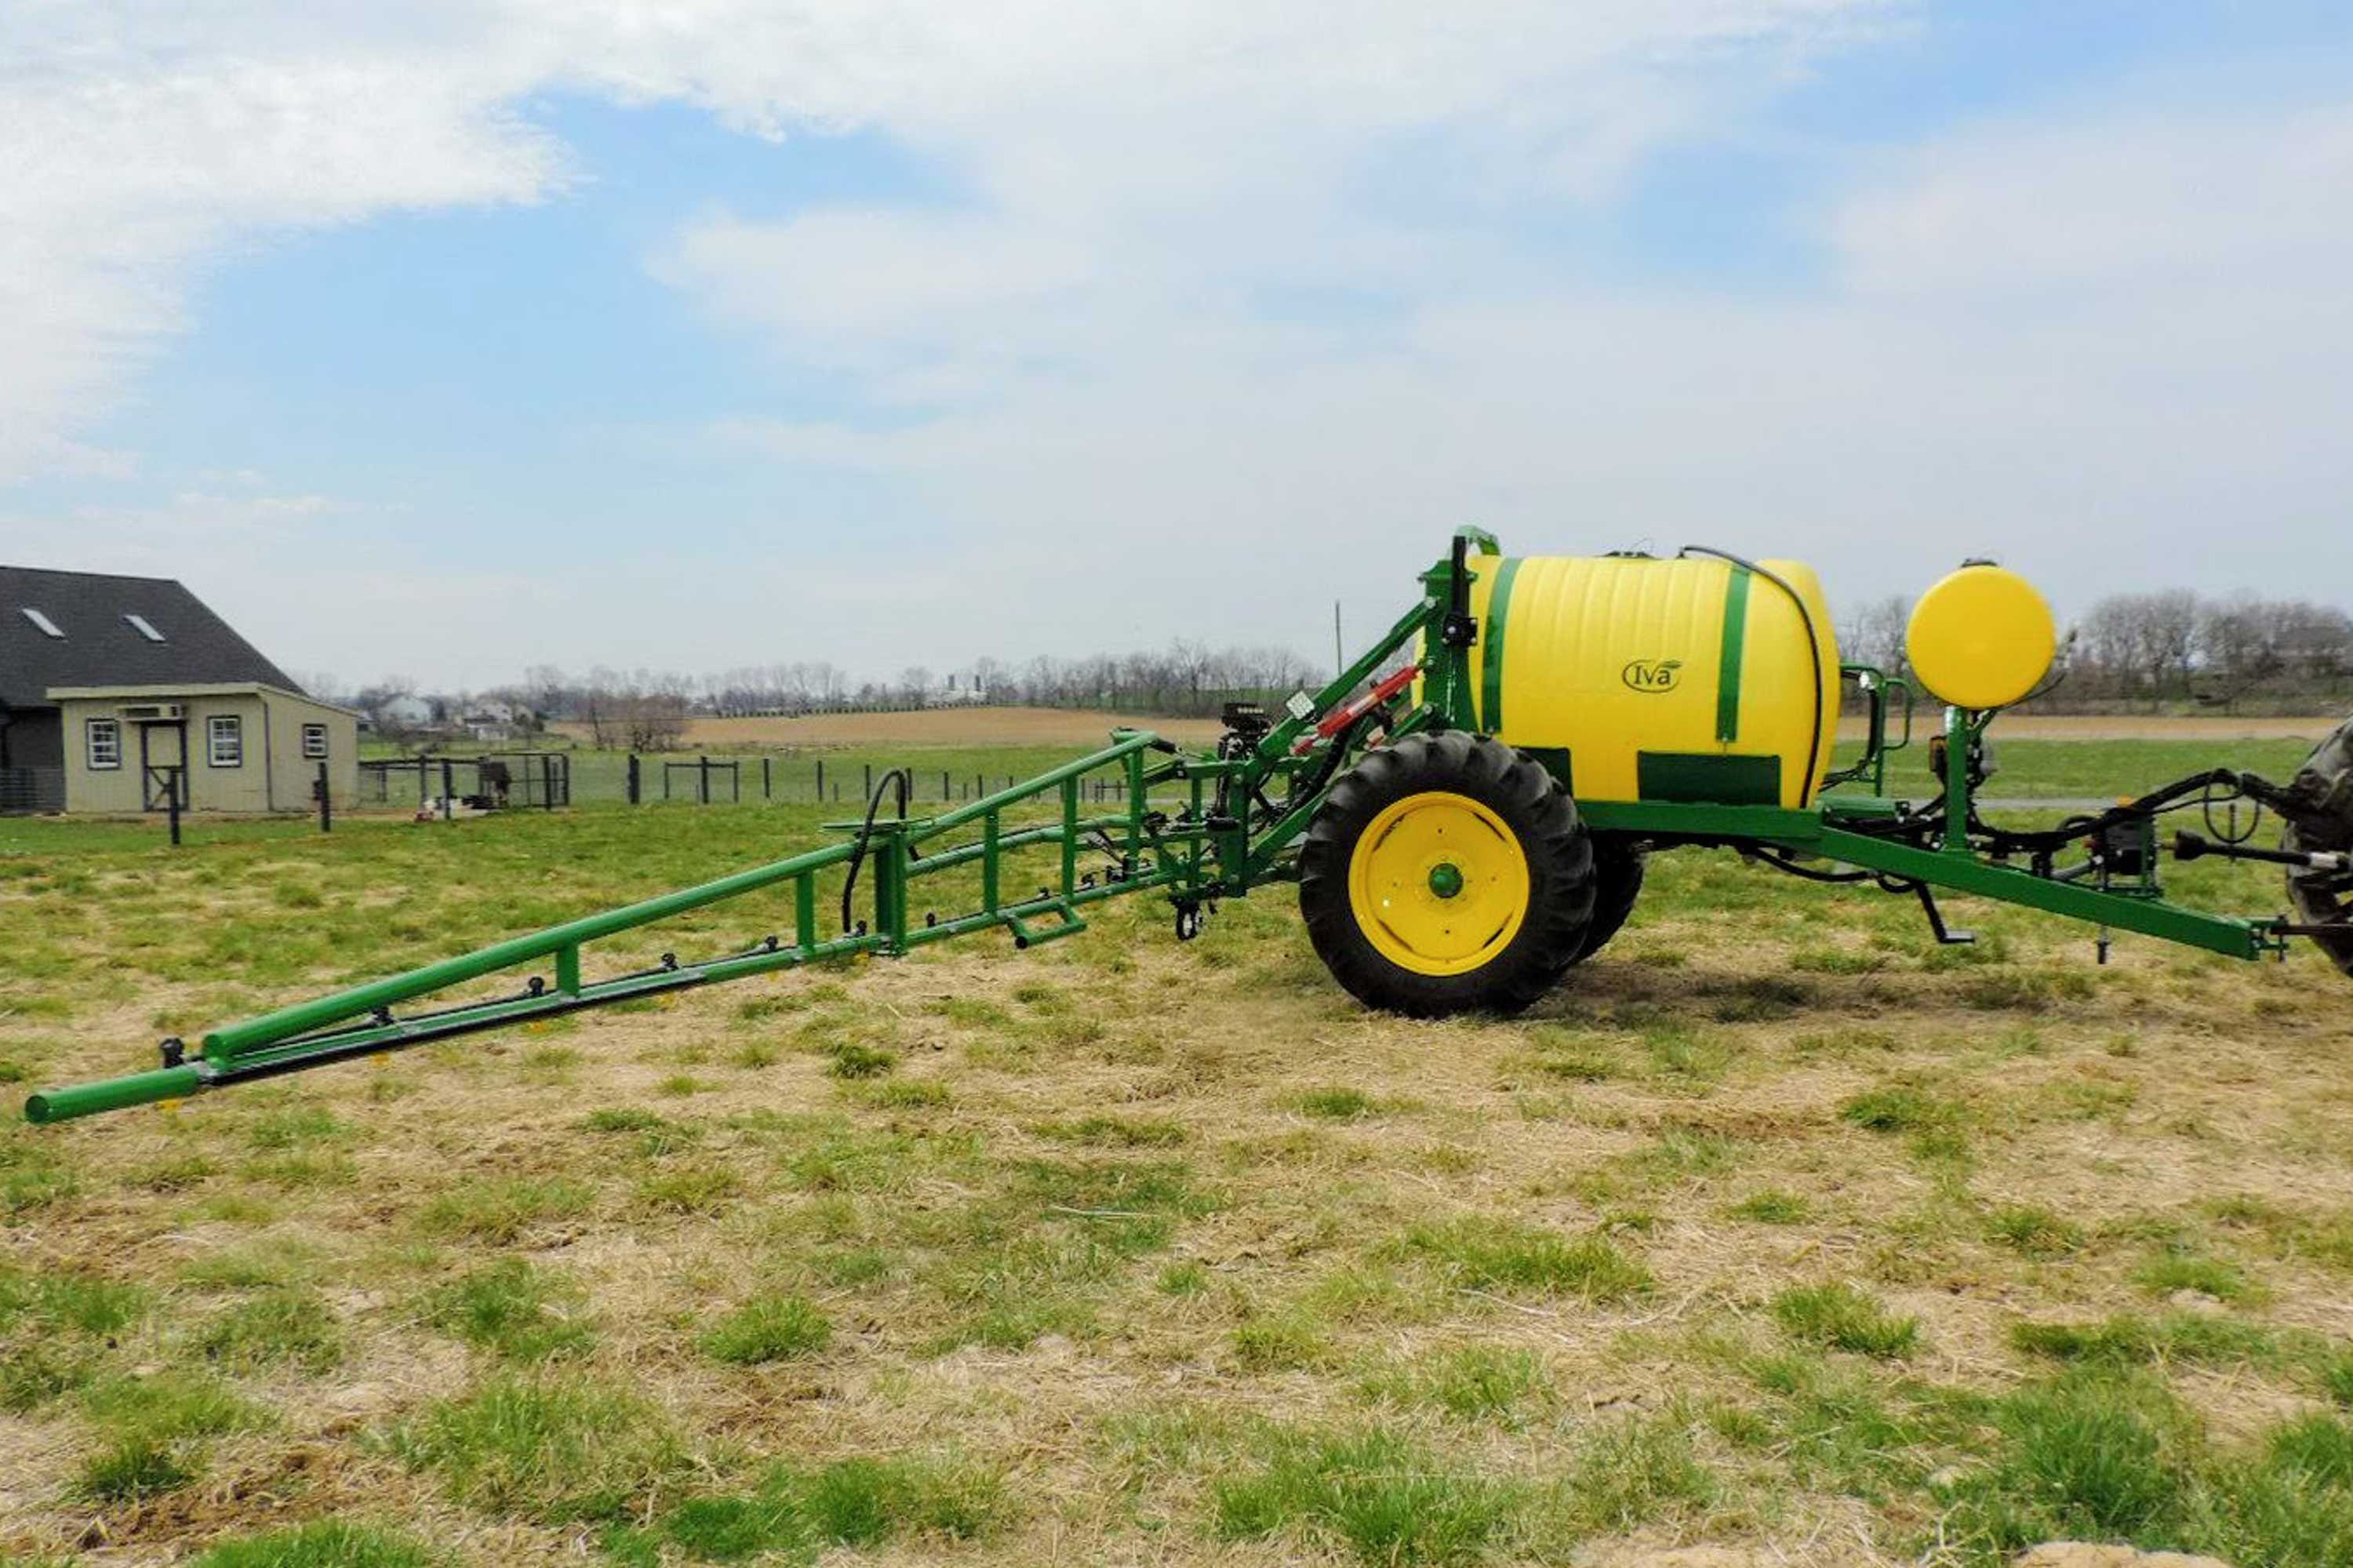 500 gallon trailer vegetable sprayer with 45' boom